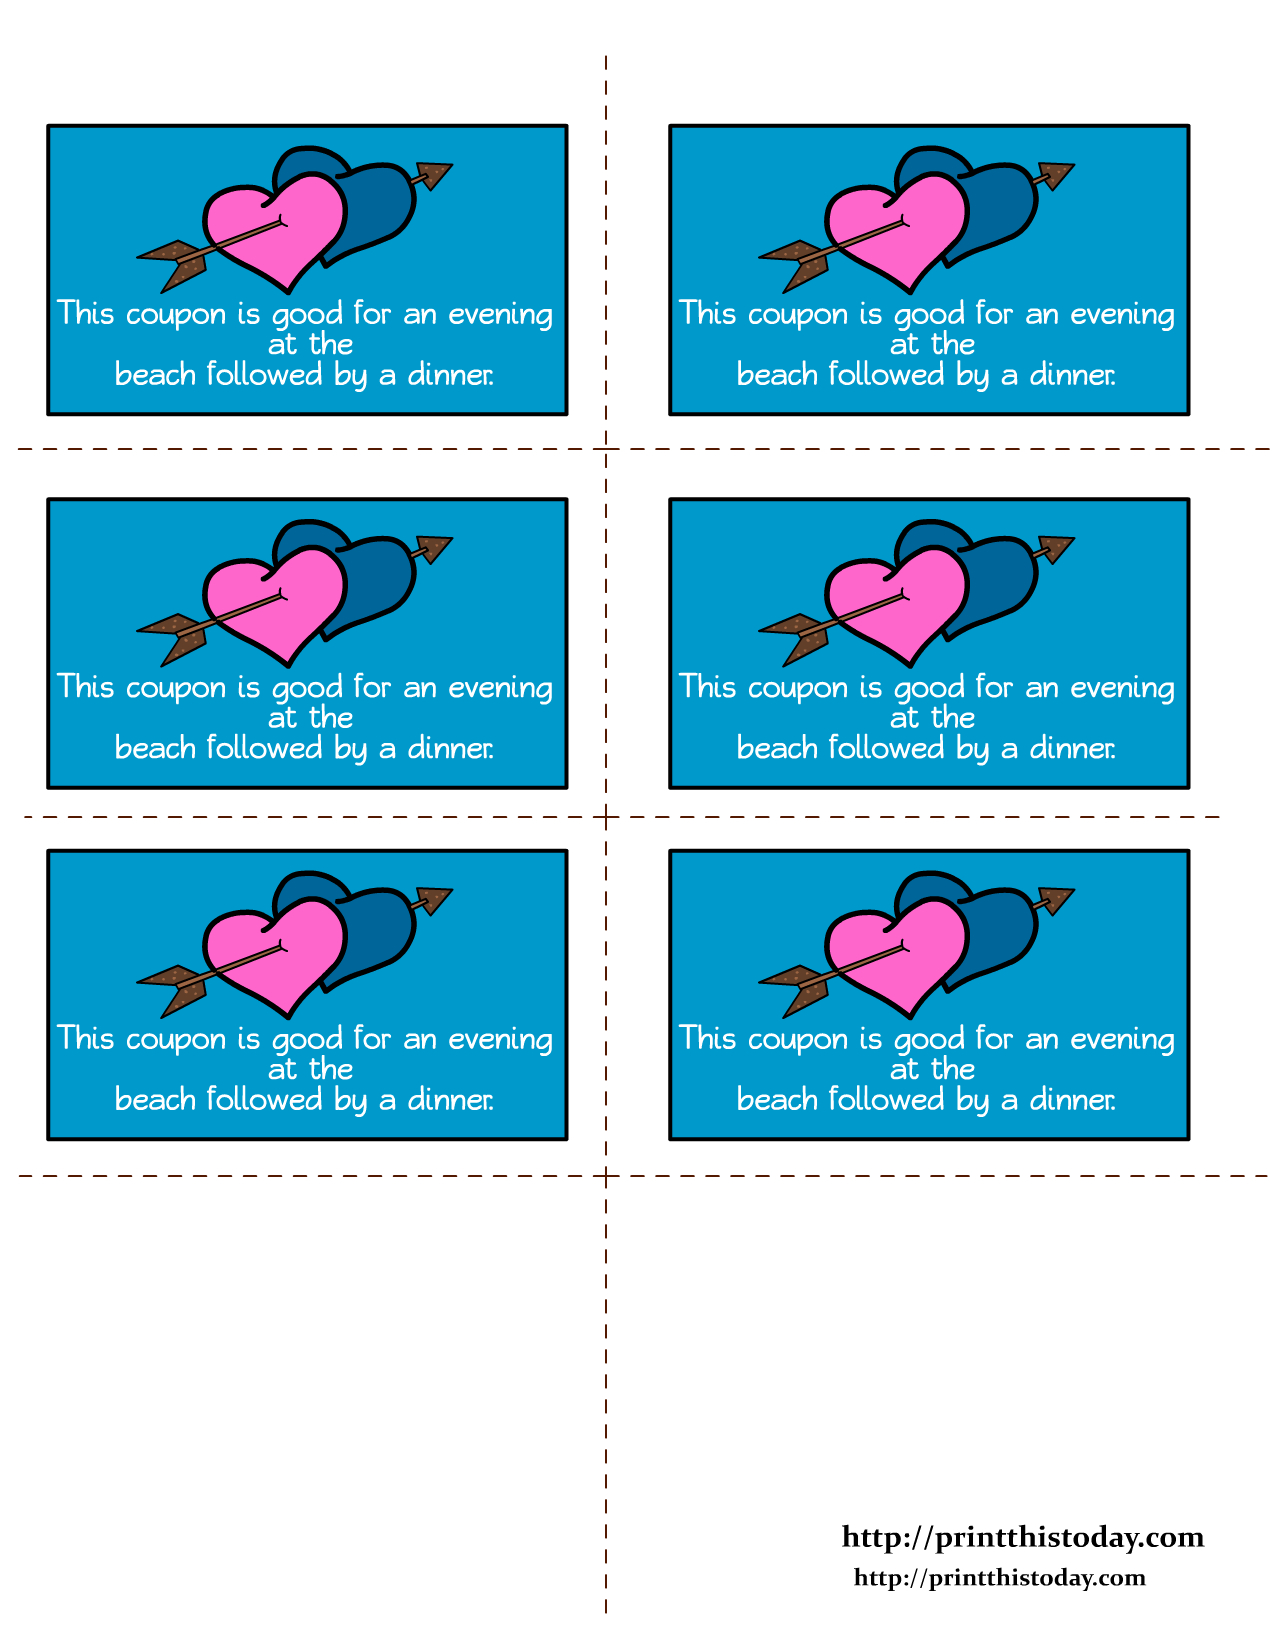 Free Printable Romantic Love Coupons - Love Coupons For Him Printable Free